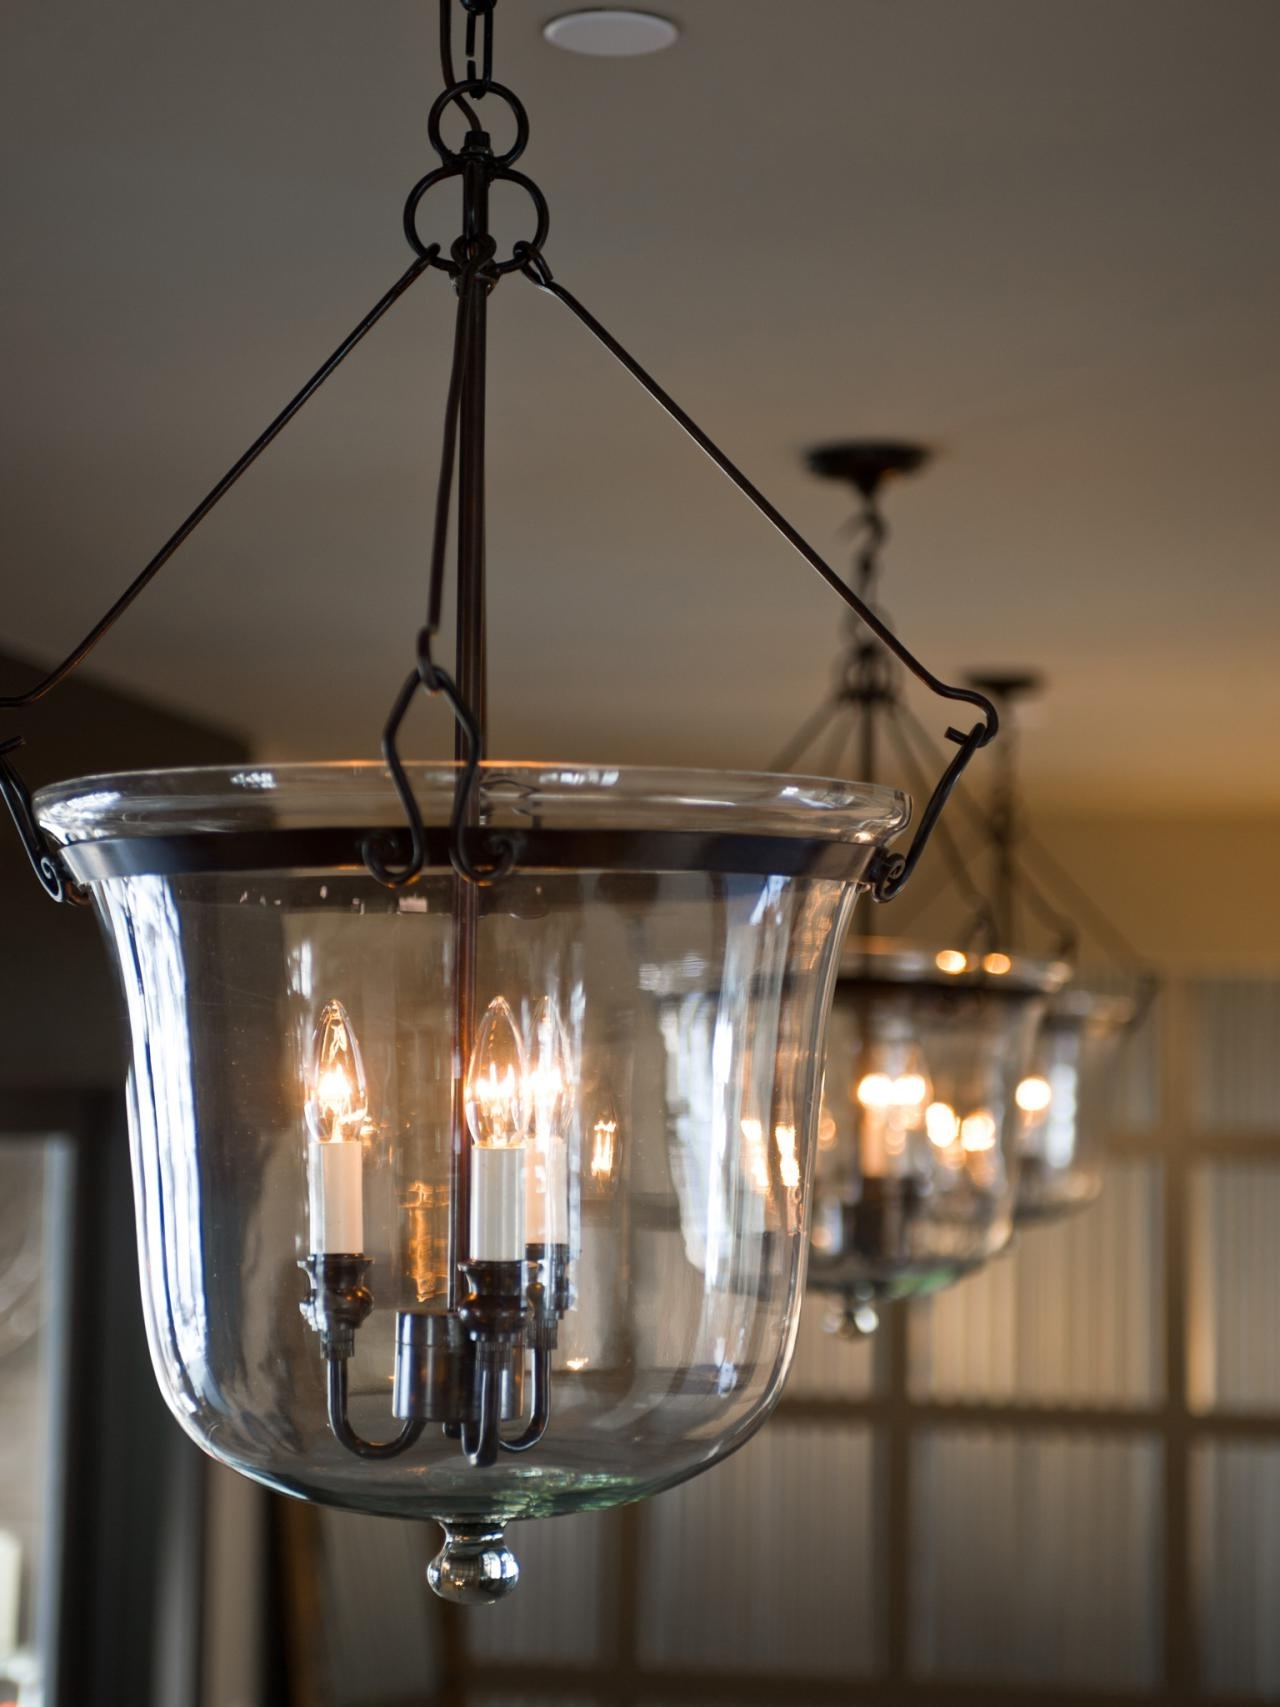 2018 Chandeliers For Low Ceilings For Light Fixture : Large Foyer Chandeliers Light Fixtures For Low (View 1 of 15)